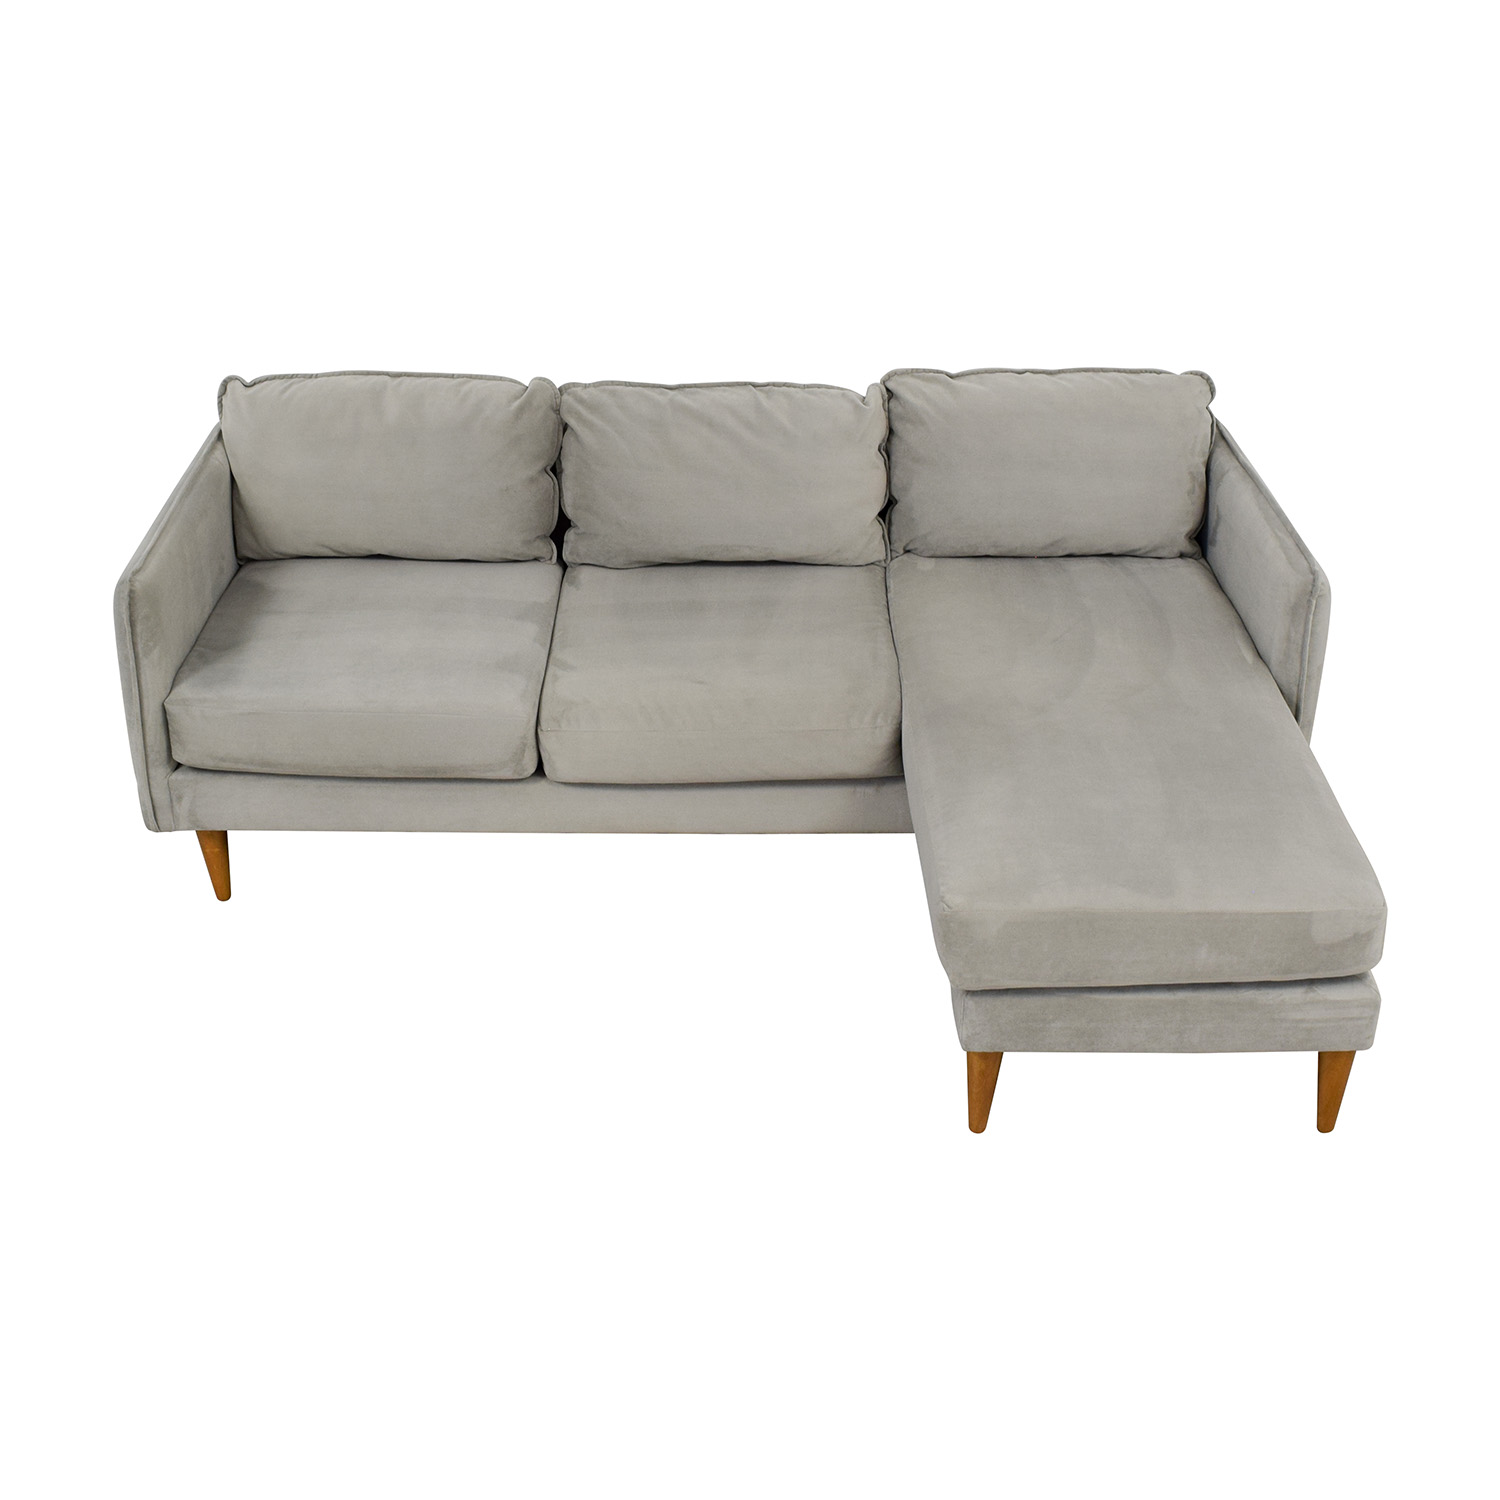 West Elm Mid Century Chaise Sectional Sofa / Sofas